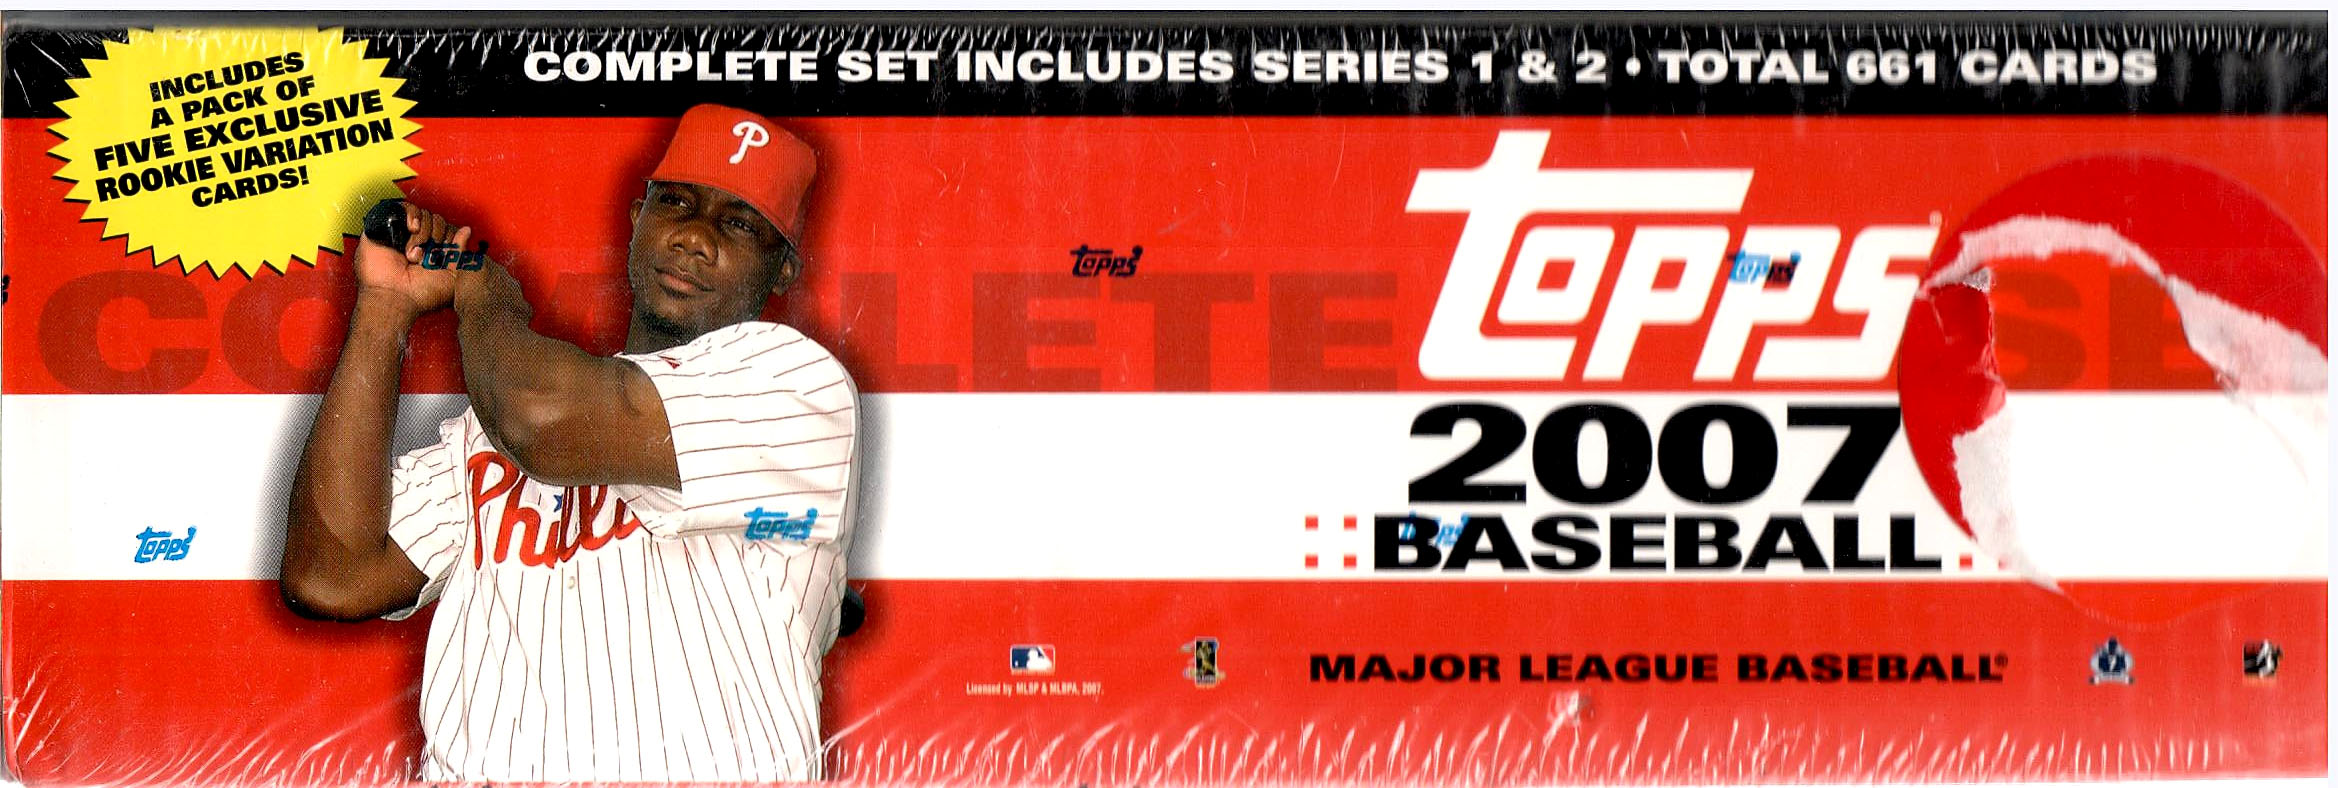 2007 TOPPS BASEBALL FACTORY SEALED SET